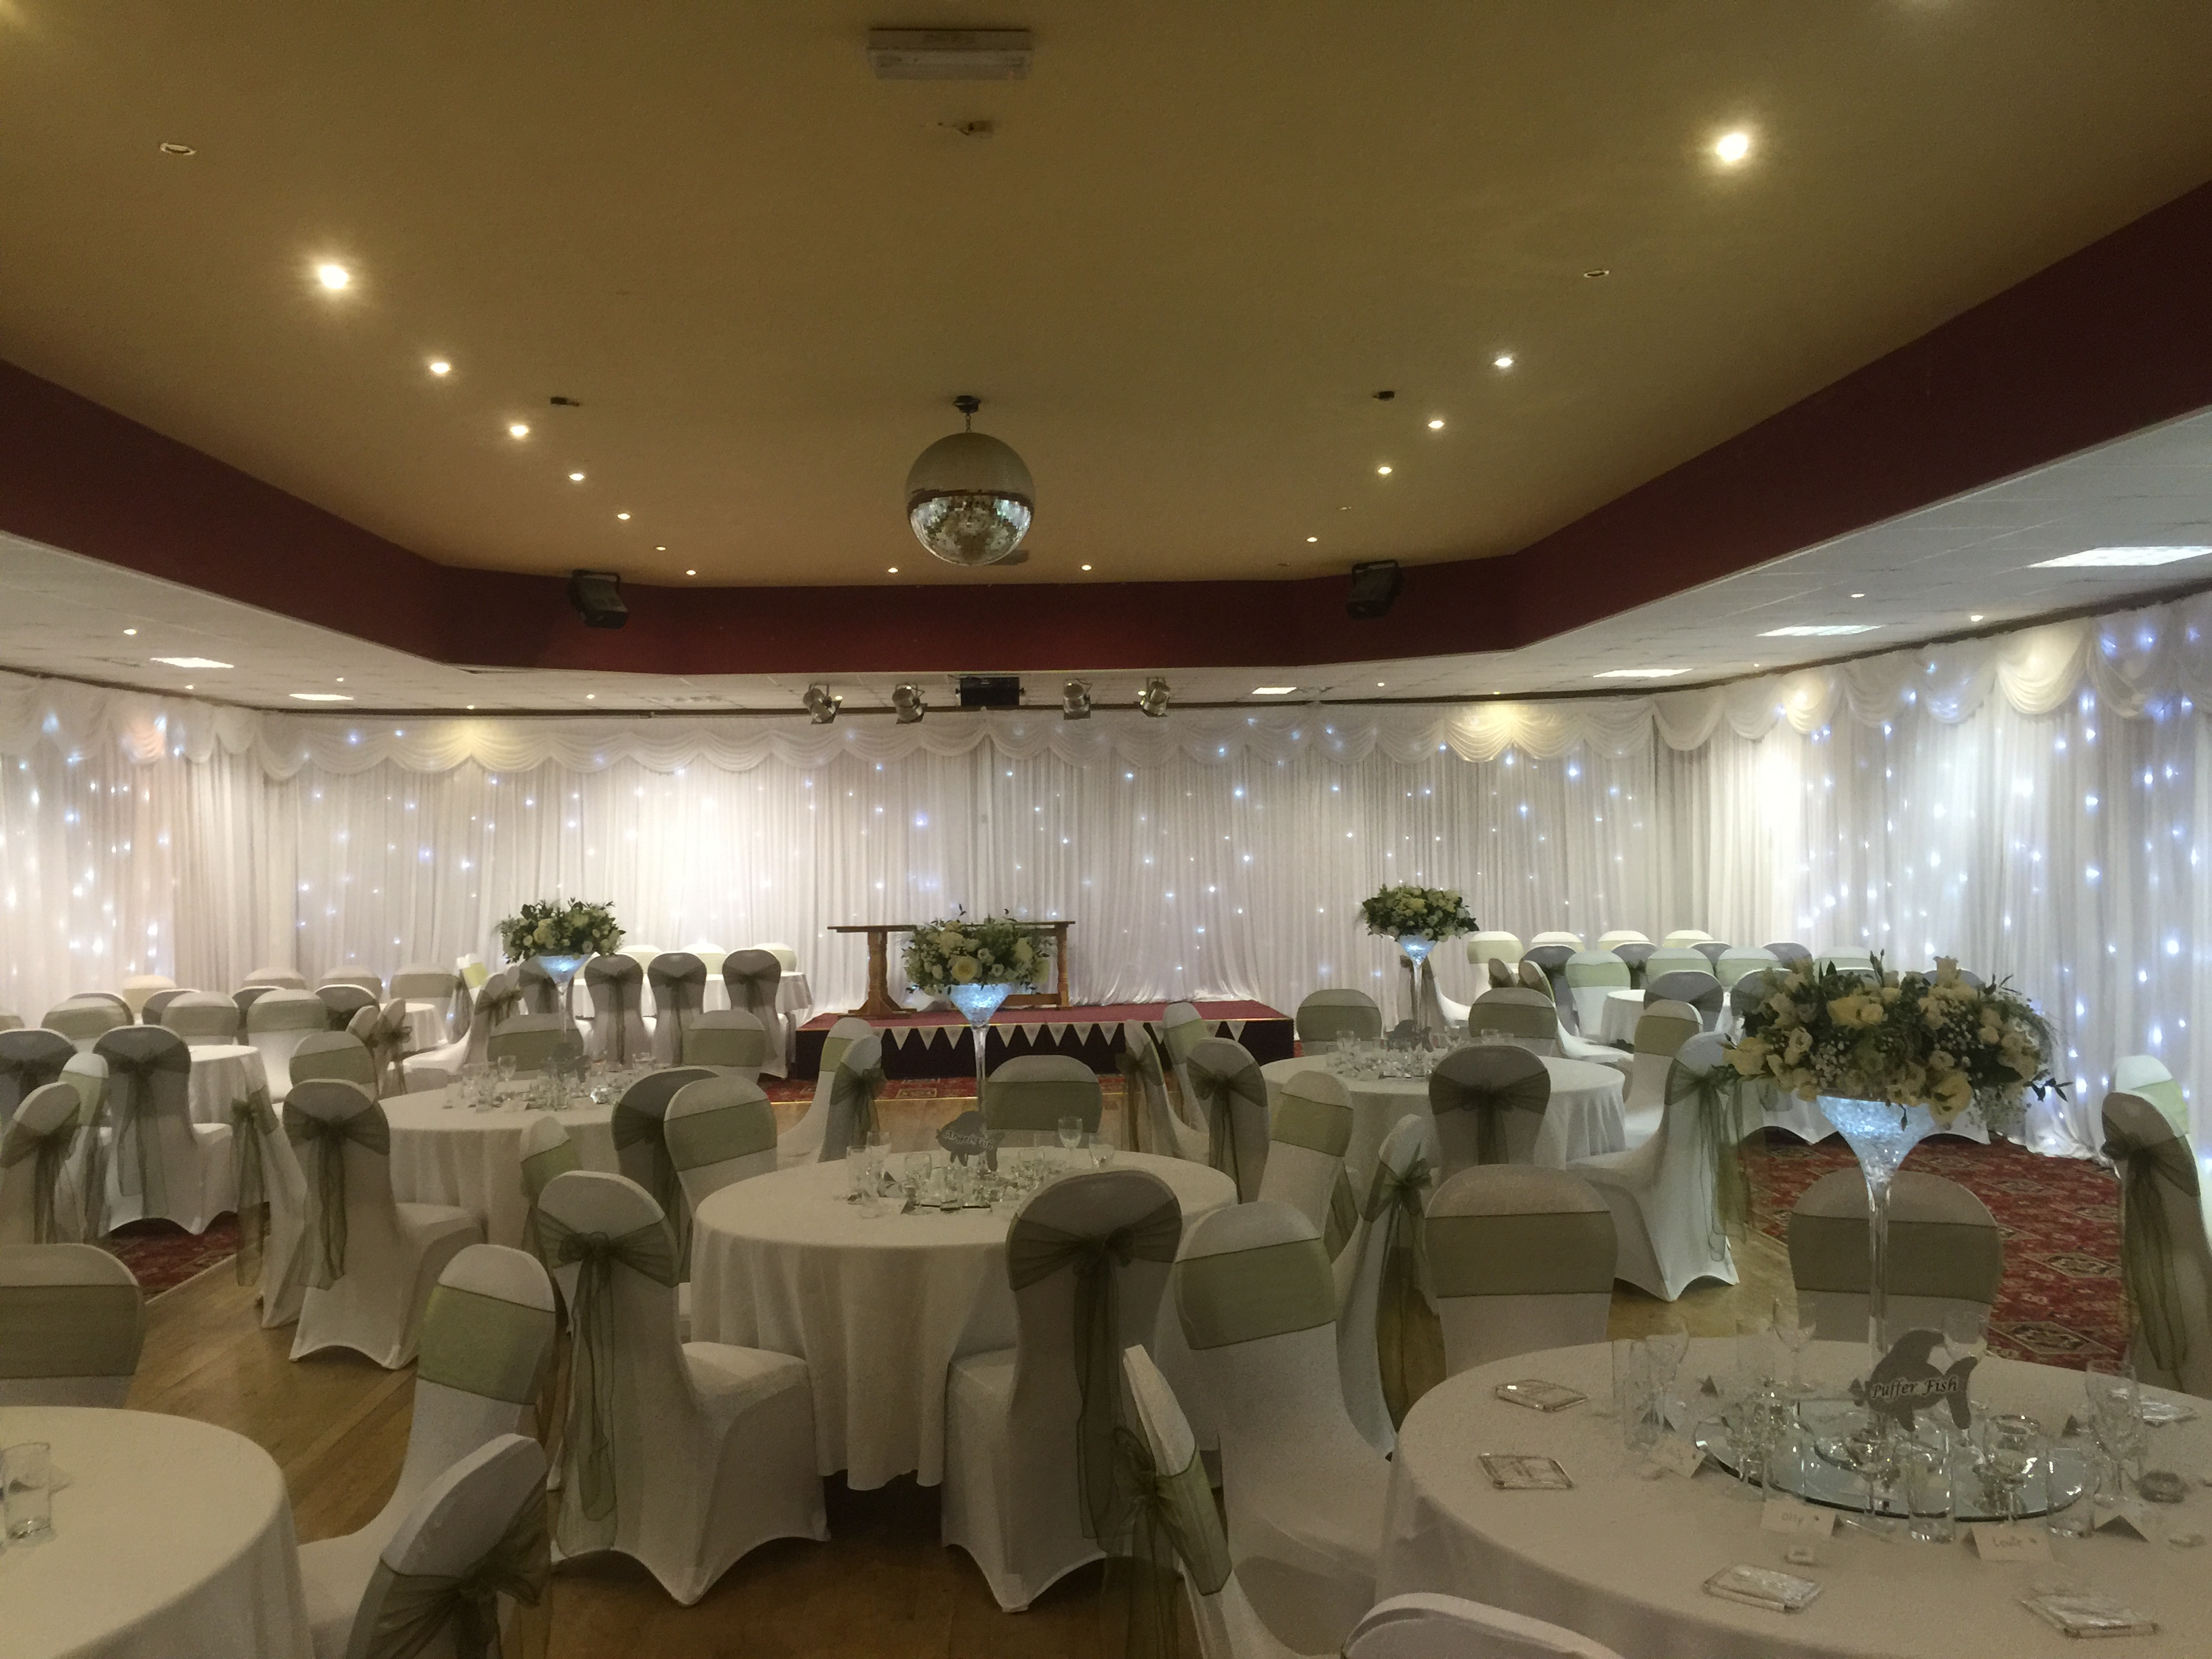 chair cover hire wigan la z boy office canada wall drapes liverpool cheshire manchester